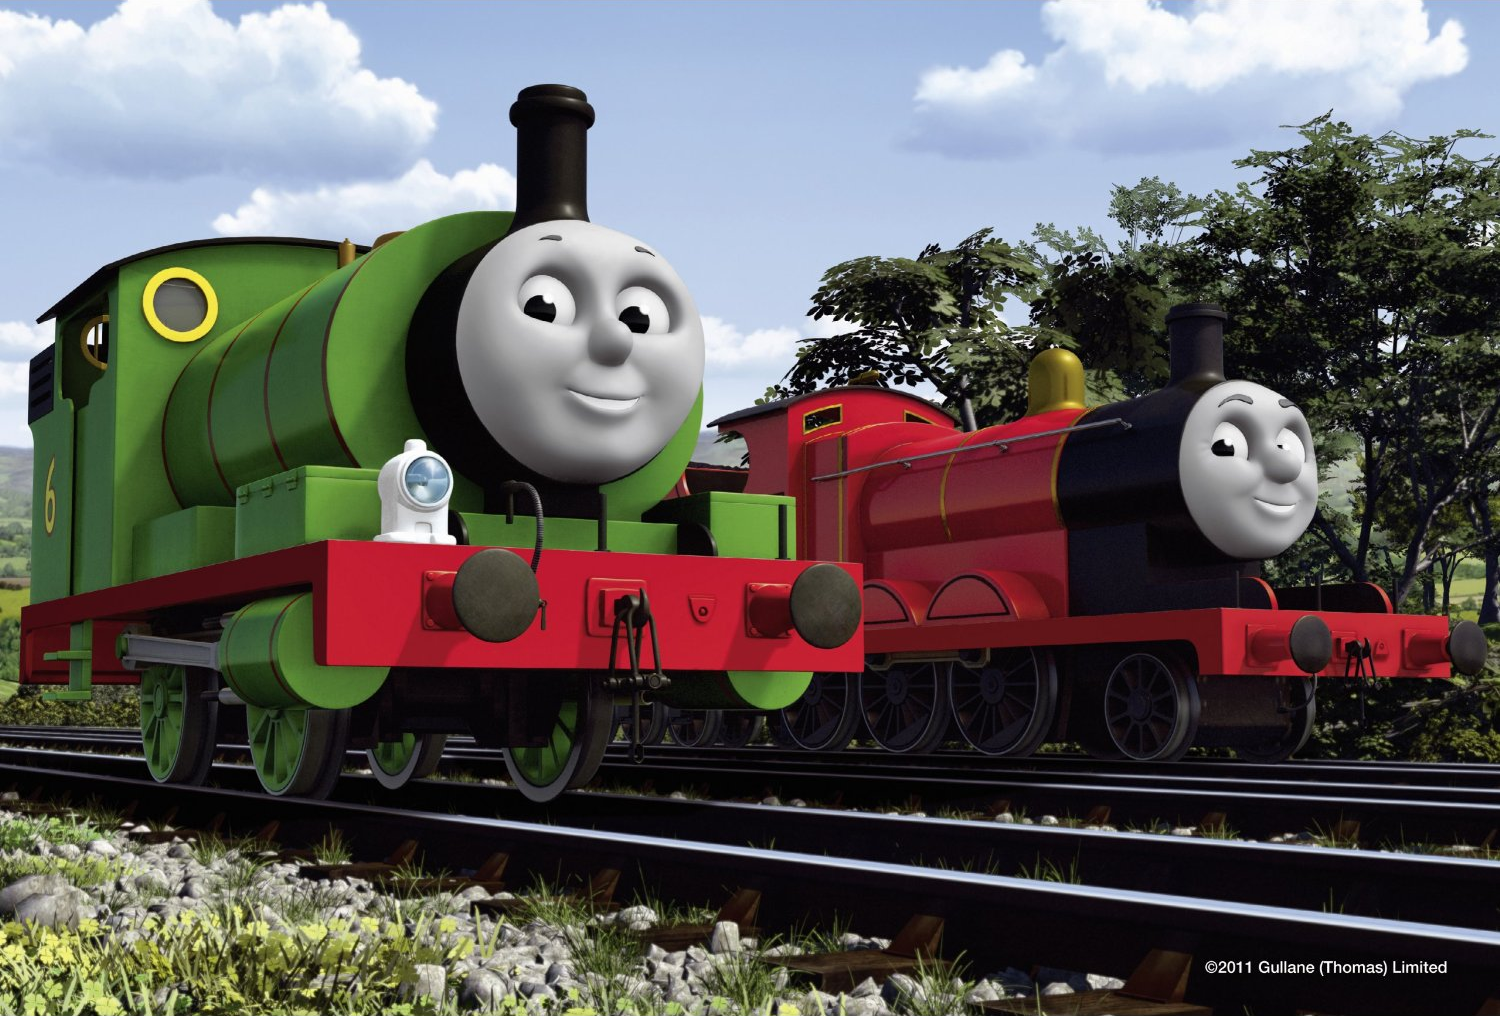 Uncategorized James Thomas And Friends image percyandjamescgipromo png thomas the tank engine wikia png